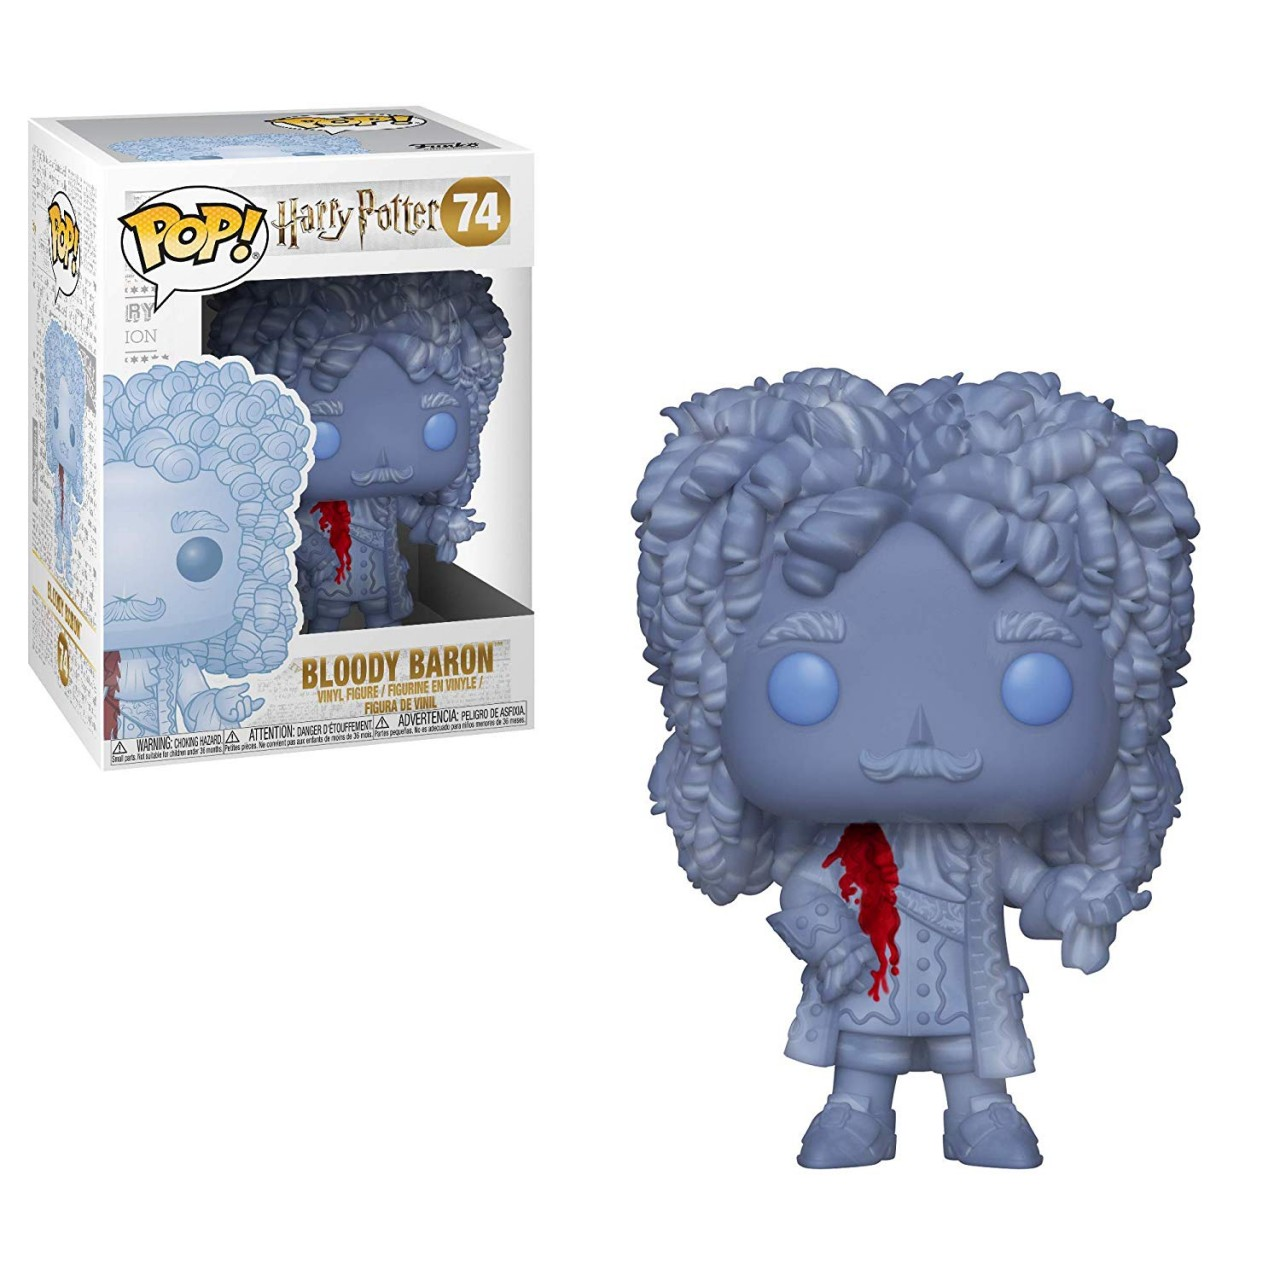 Фигурка Funko Pop Гарри Поттер - Кровавый Барон #74 (35513) Harry Potter Bloody Baron